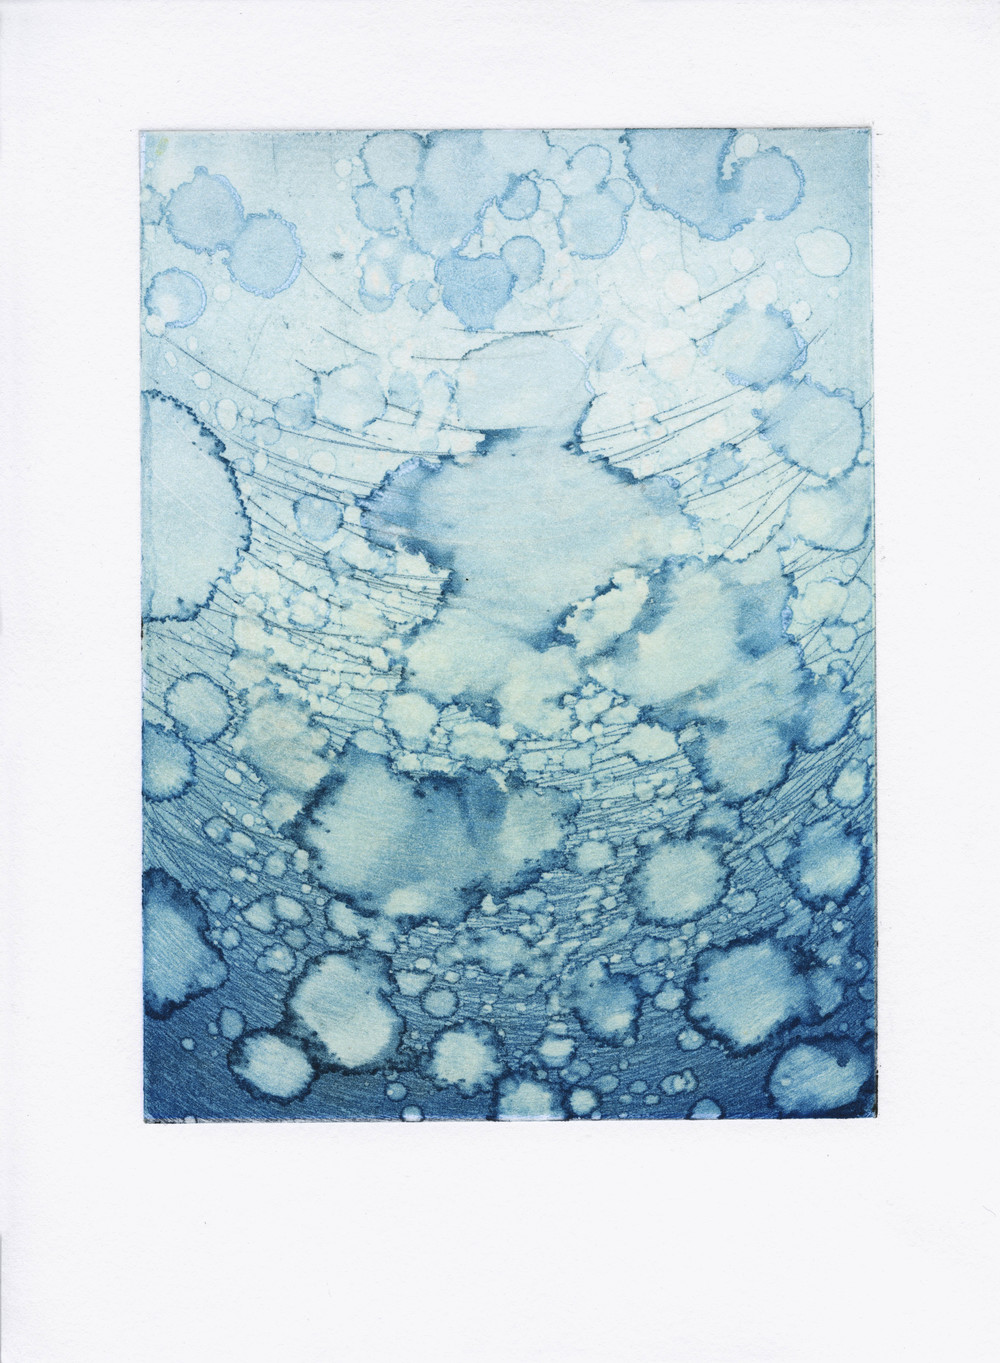 Untitled (blue drops)